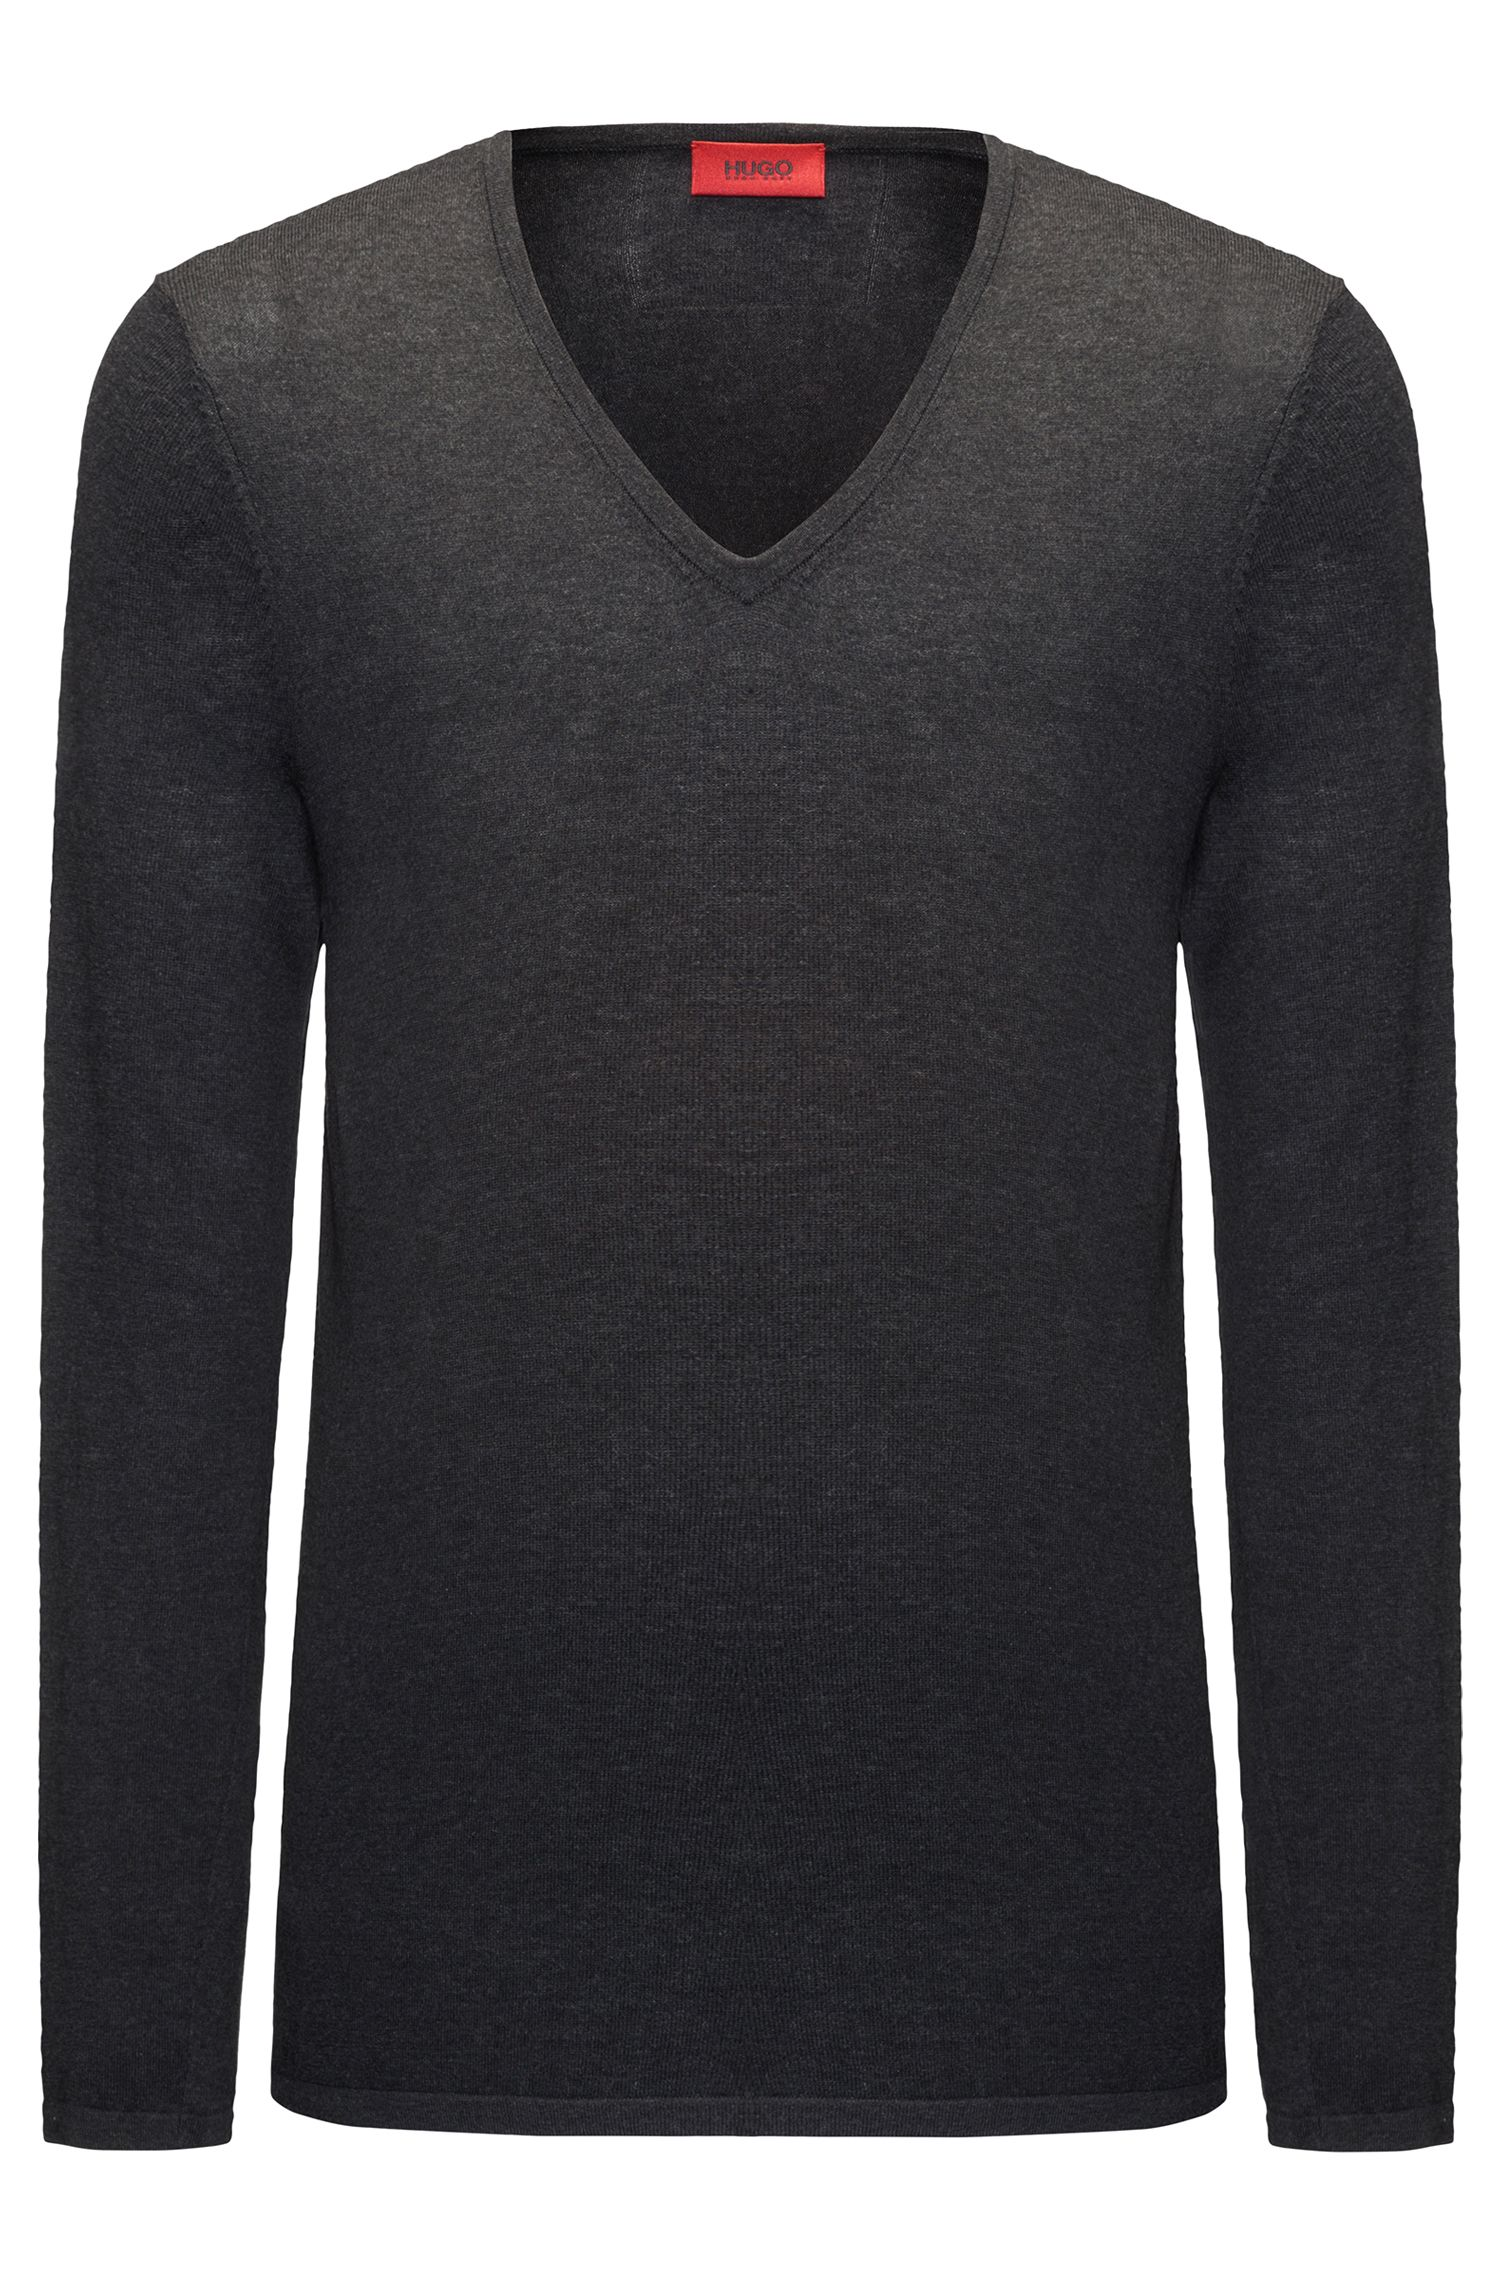 V-neck sweater in a cotton blend